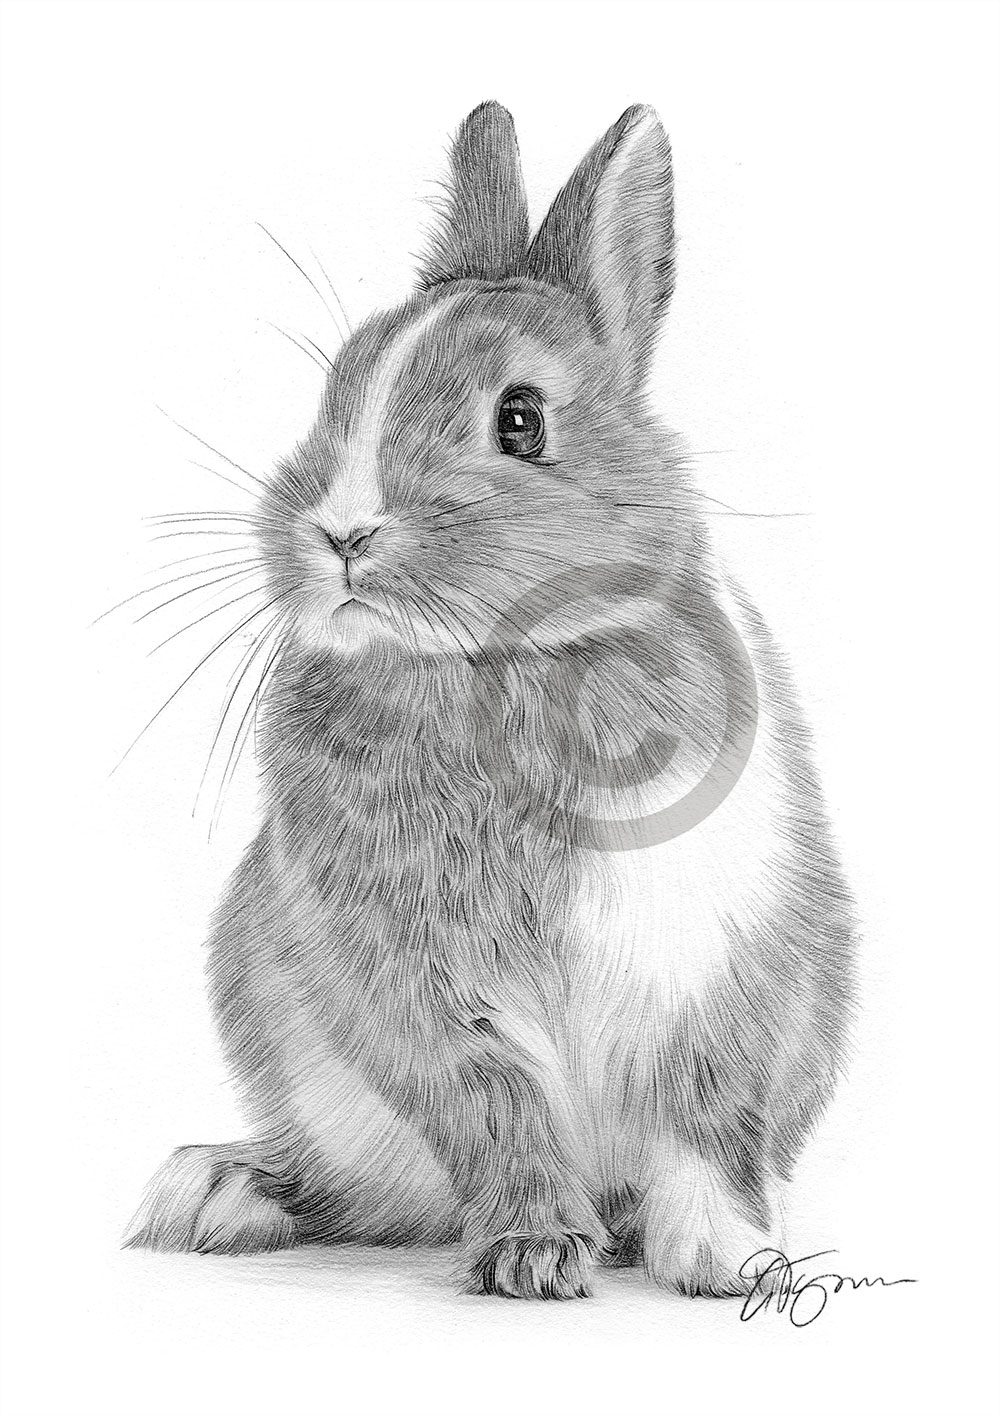 White and brown Rabbit pencil drawing by artist Gary Tymon